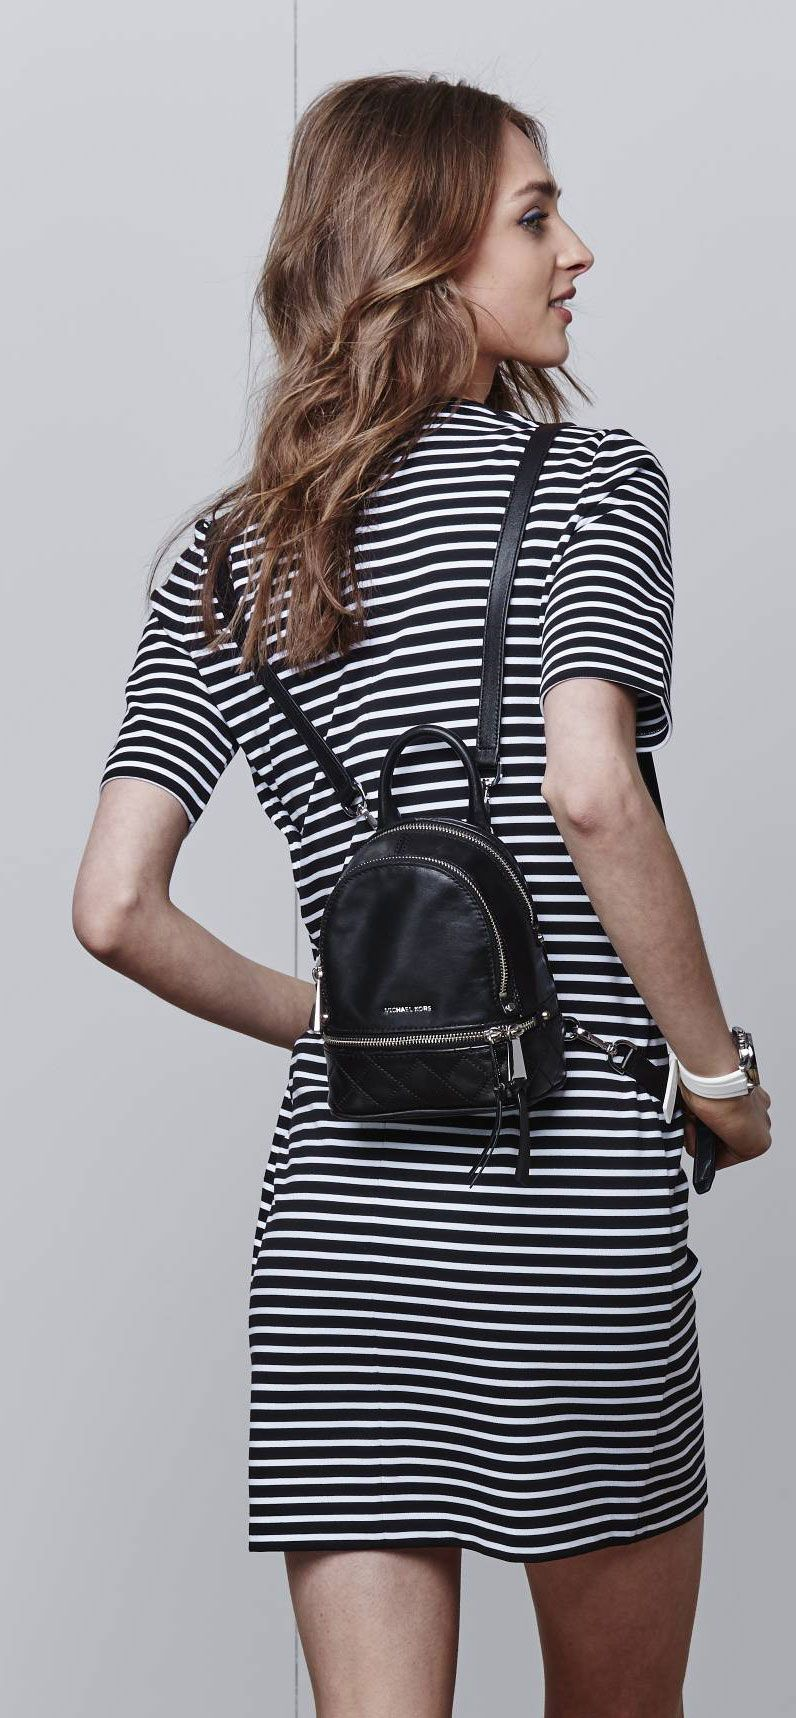 8ad6e8c9f8f1 The ultimate summer essential, this mini MICHAEL Michael Kors backpack  makes traveling a breeze. The perfect size for just the essentials, this  knapsack ...